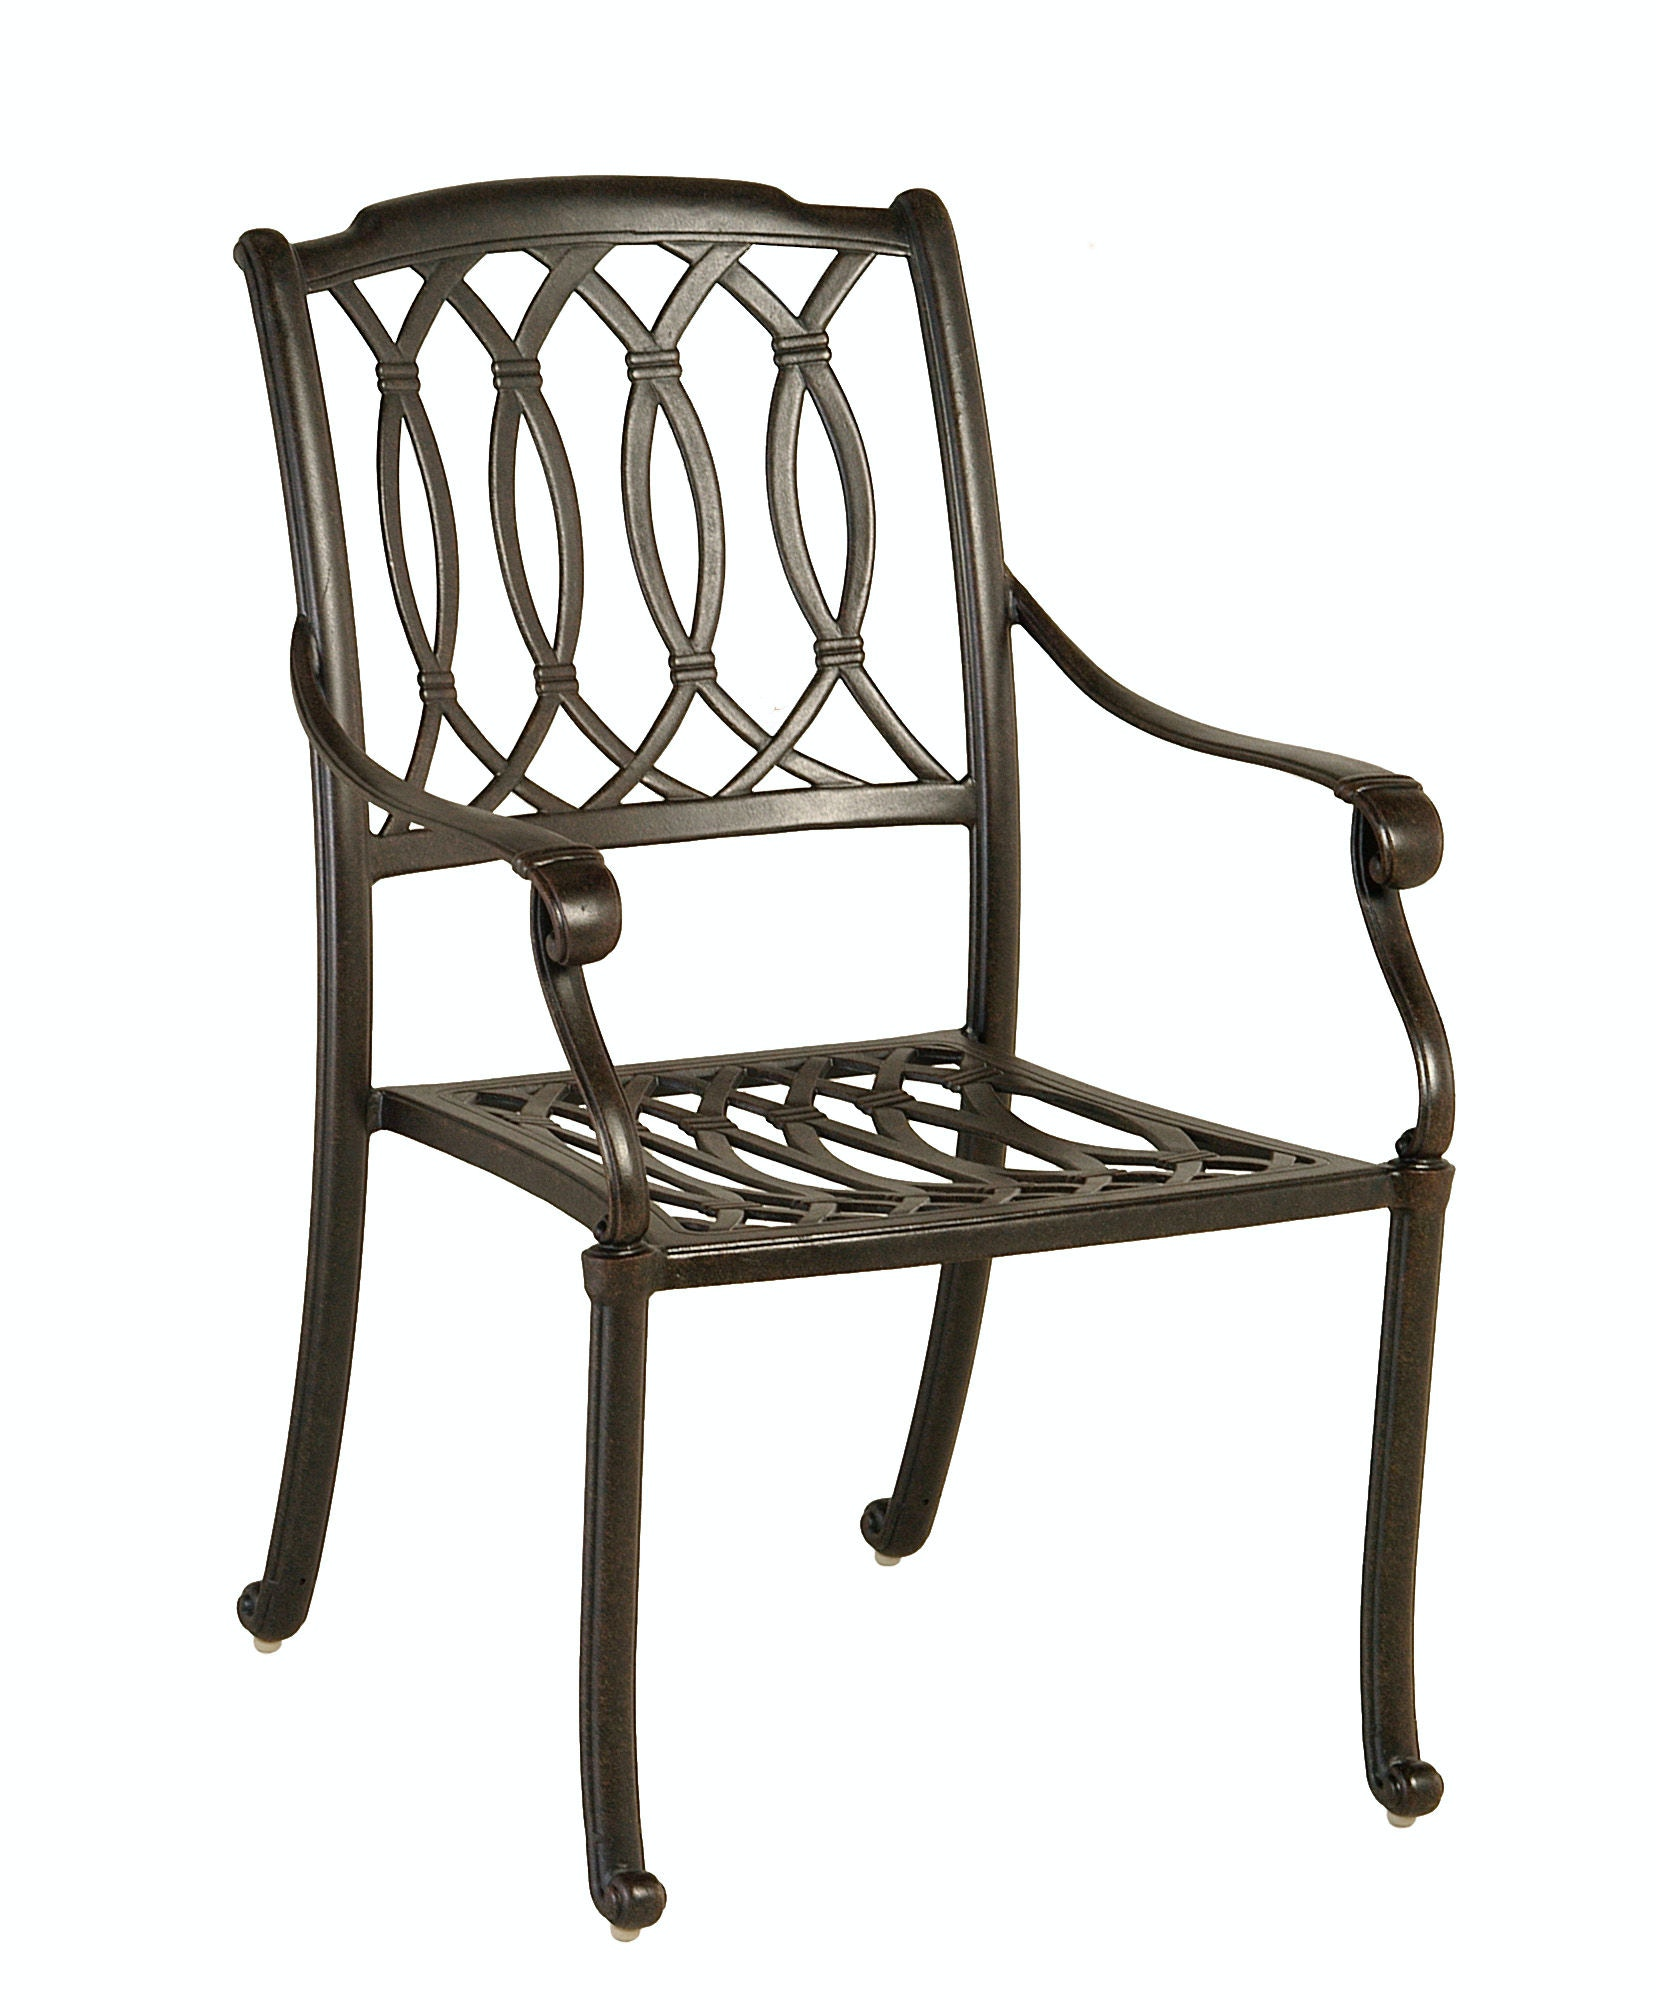 Fire House Casual Mayfair Dining Chair L450 208141